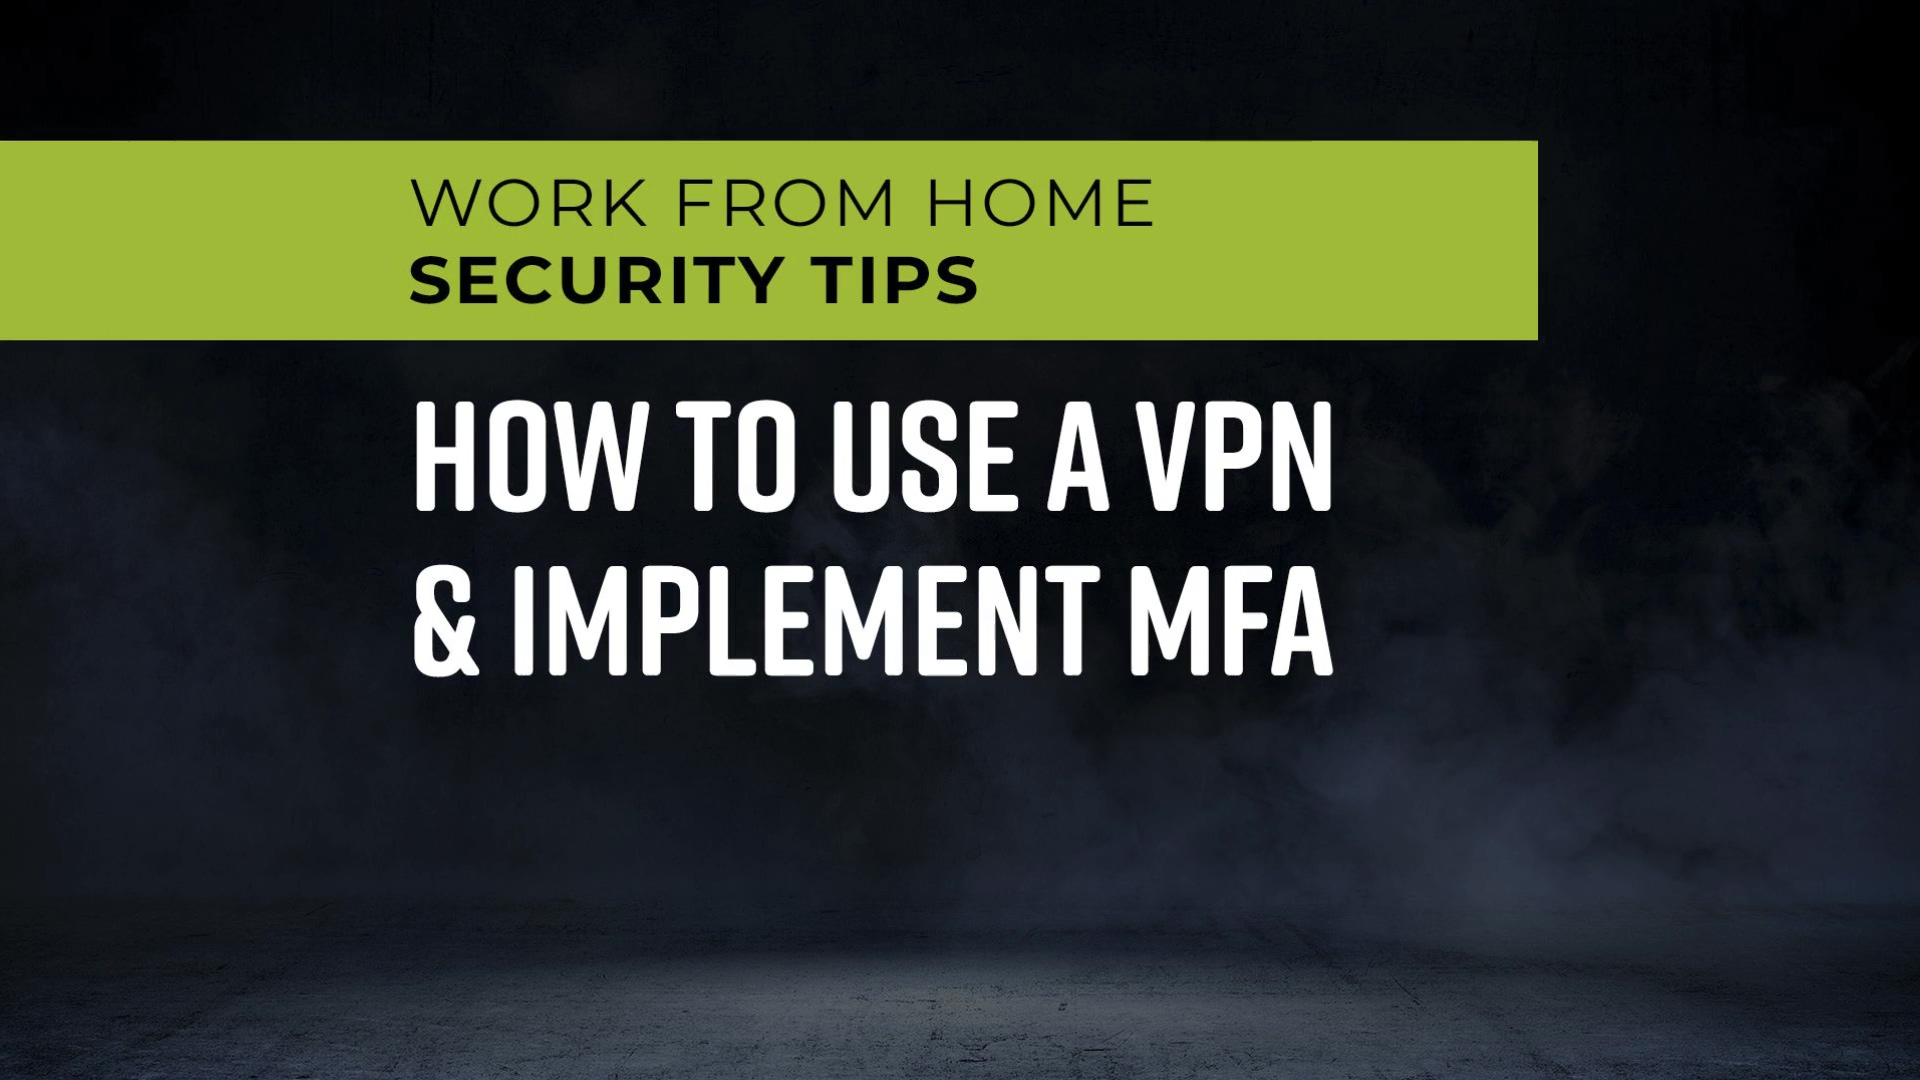 Work_From_Home_Security_Tips_-_How_to_Use_a_VPN__Implement_MFA_1080p